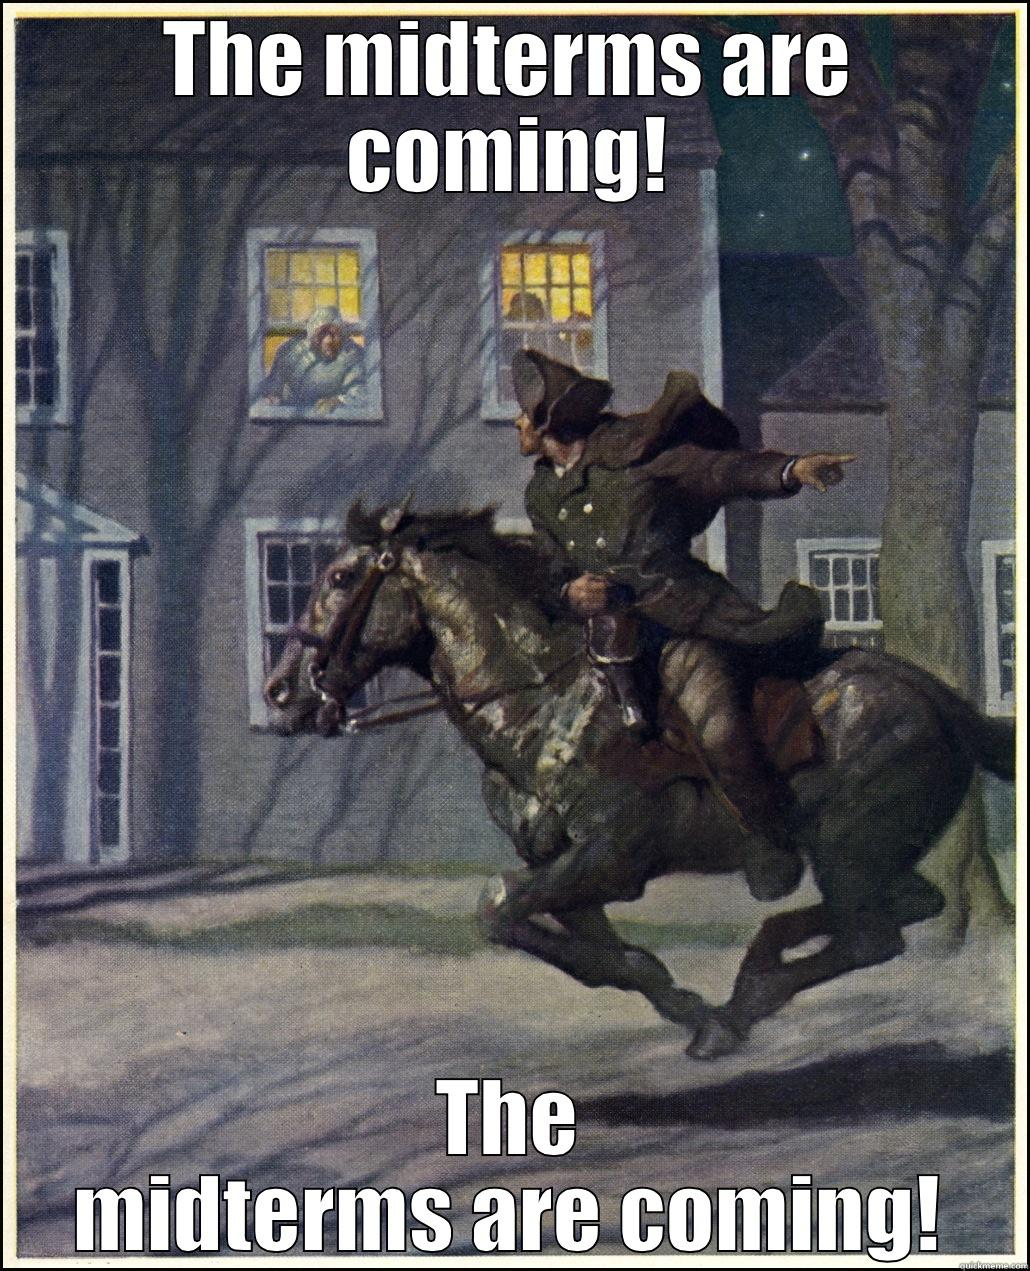 paul reveres ride essay Paul revere essays paul revere was an american patriot who, in 1775, carried news to lexington of the approach of the british he warned the patriot leaders, samuel adams and johh hancock of their danger and called the citizens of the countryside to arms.